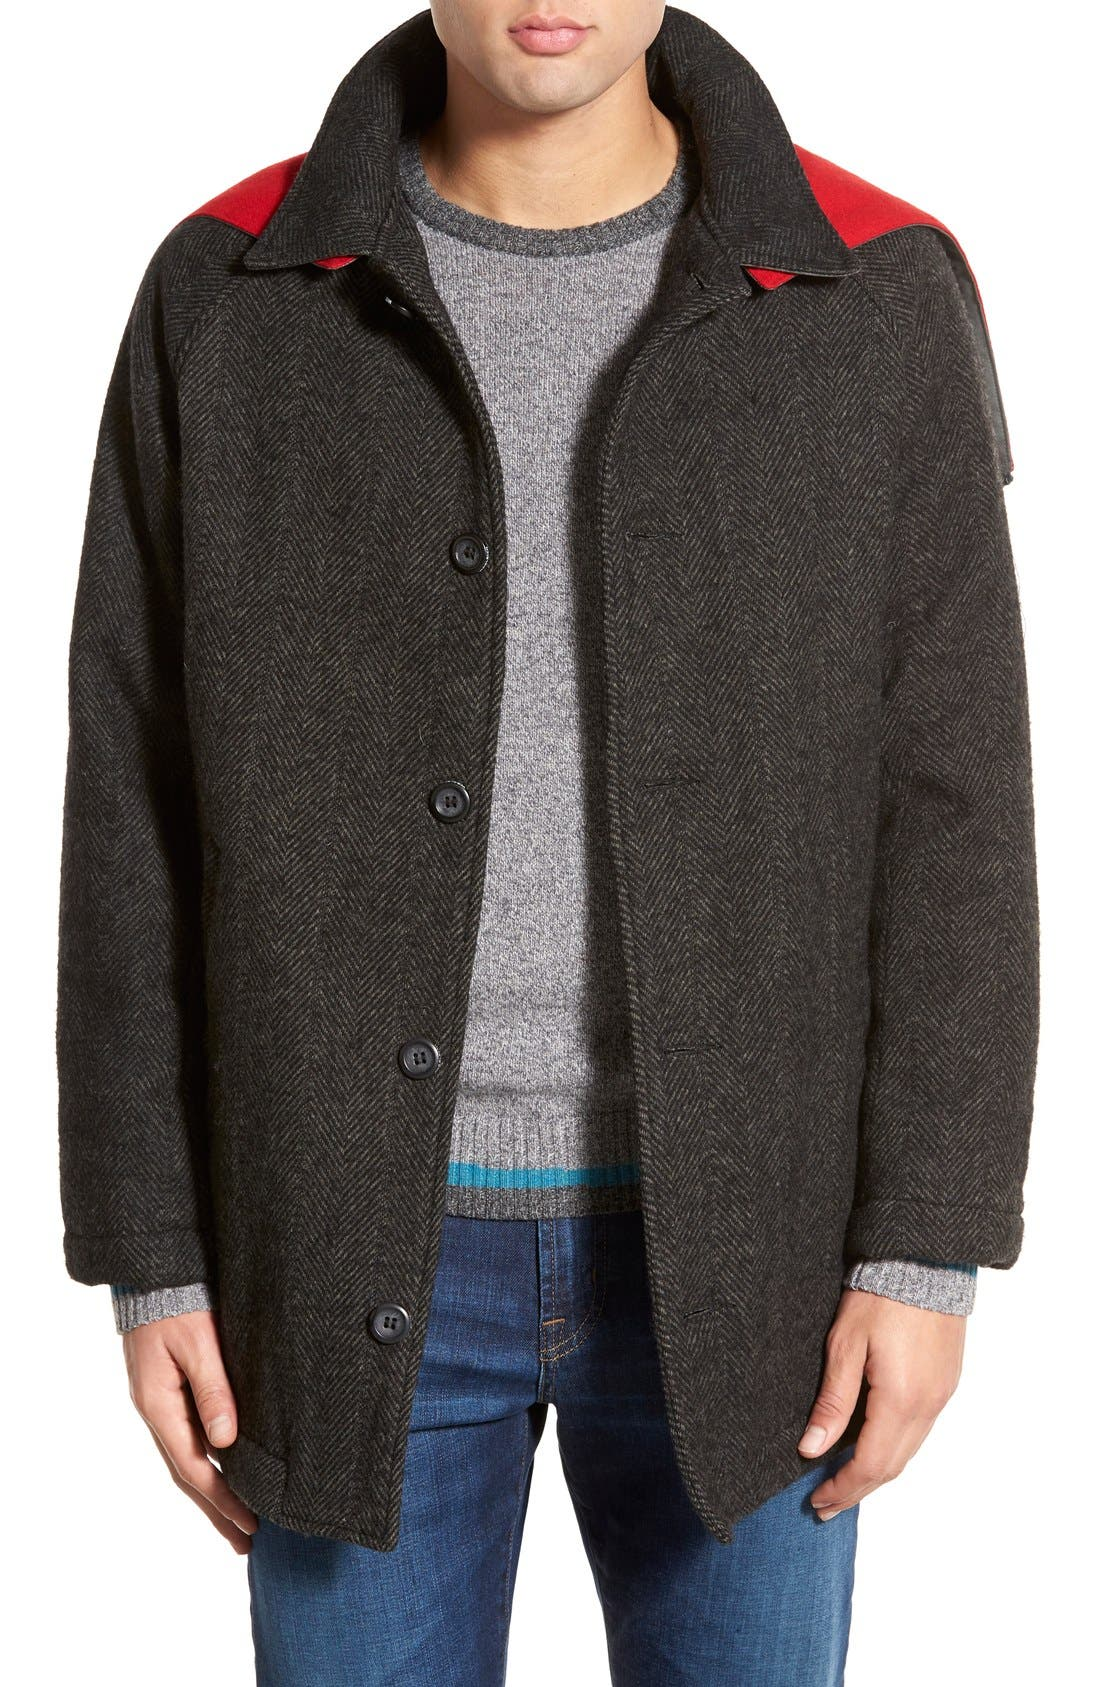 Alternate Image 1 Selected - Woolrich 'Mill' Water Resistant Herringbone Wool Blend Car Coat with Detachable Hood